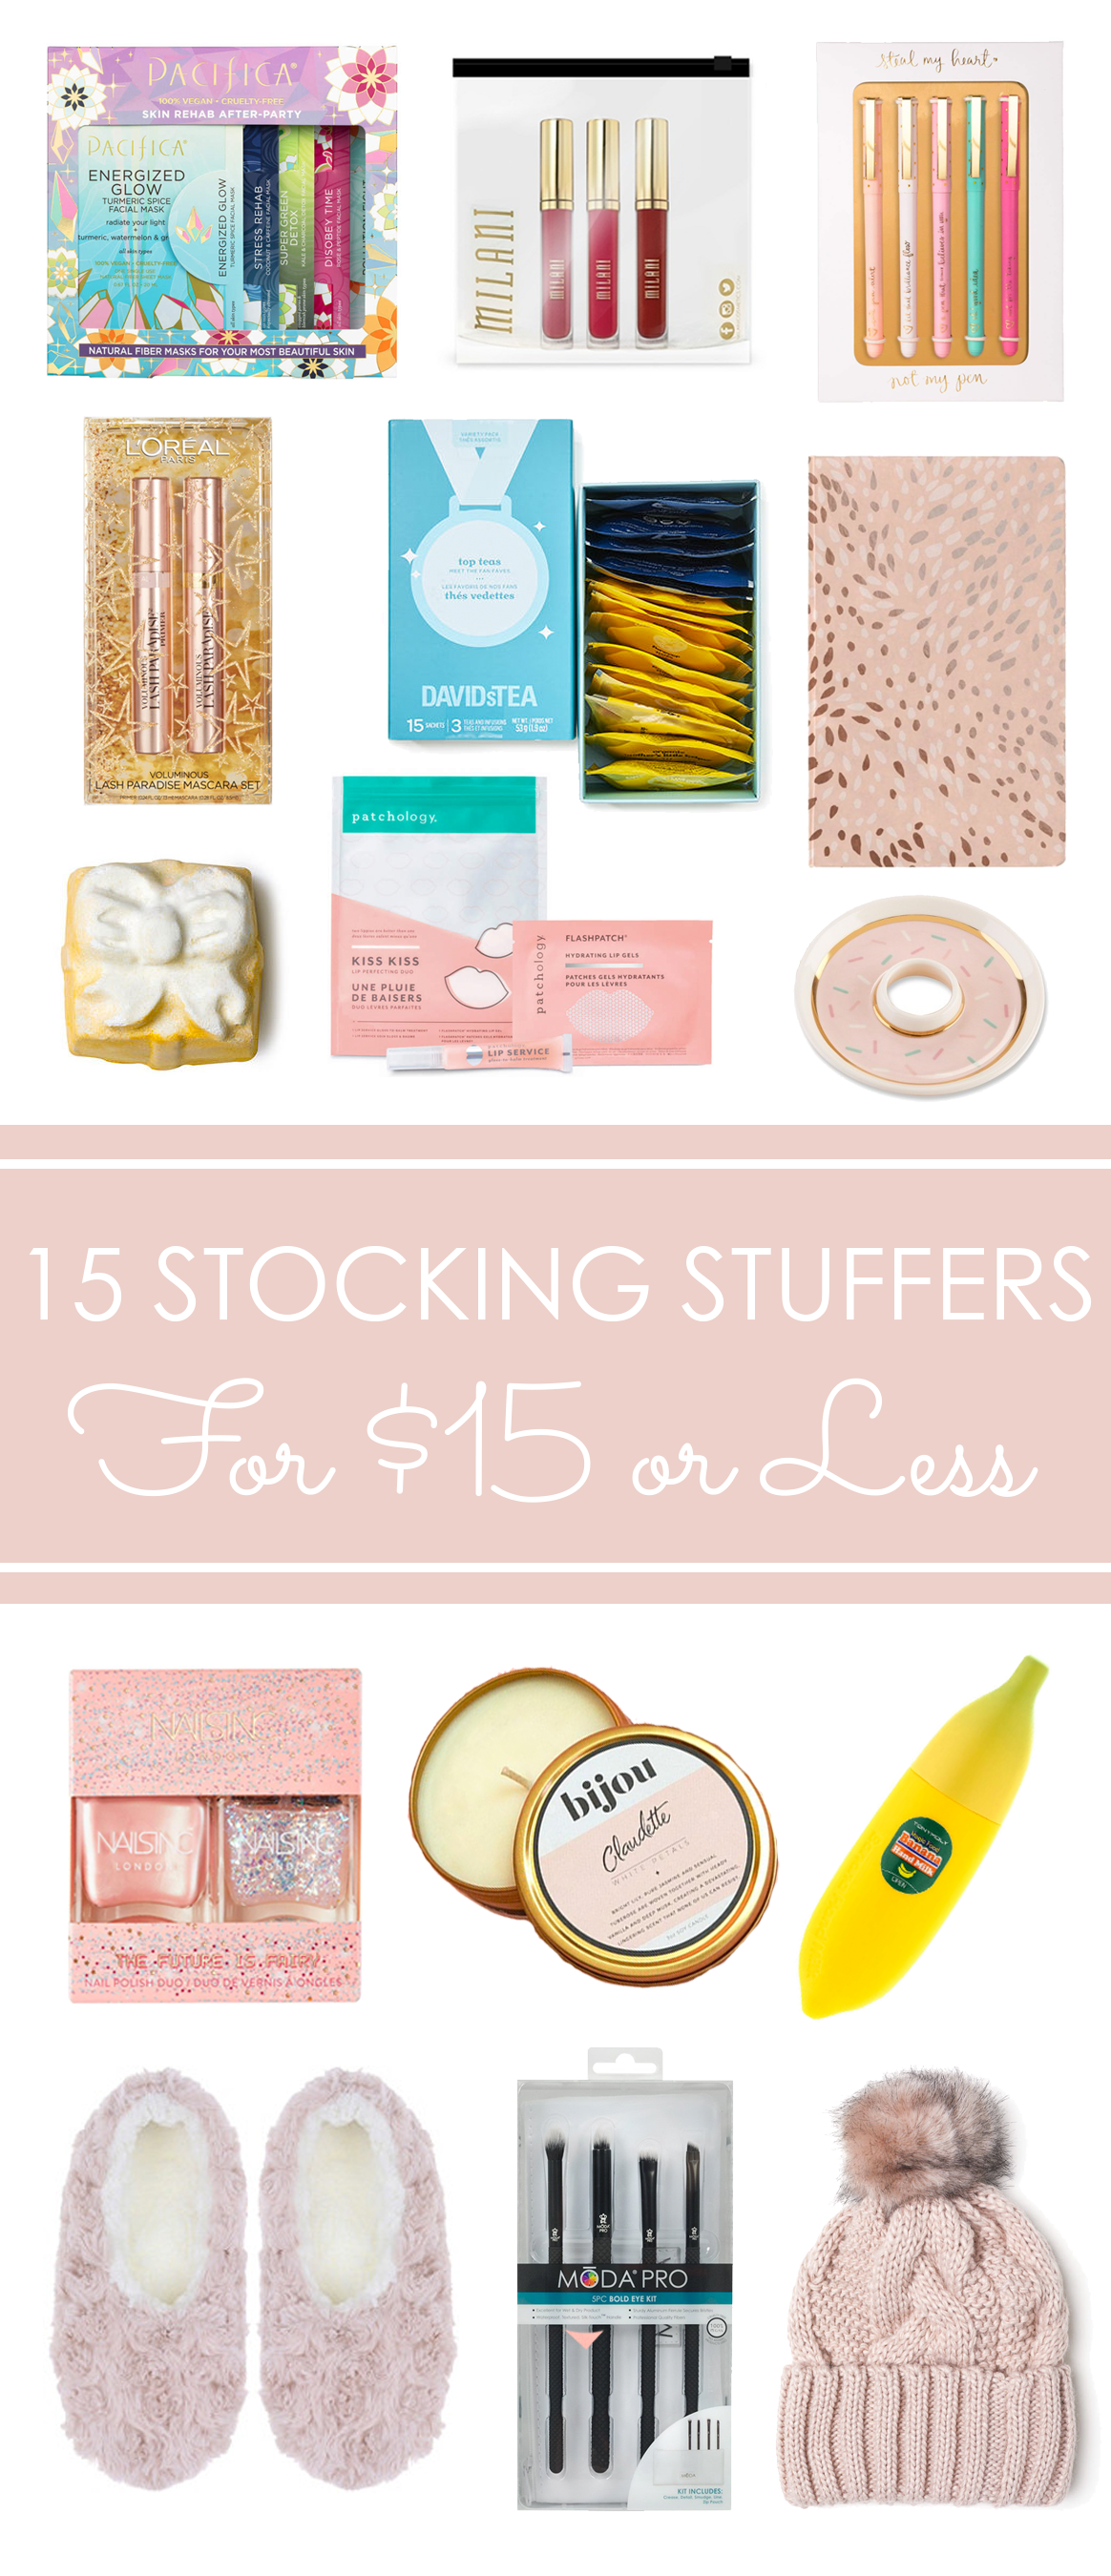 15 Stocking Stuffers for Her that cost $15 or Less